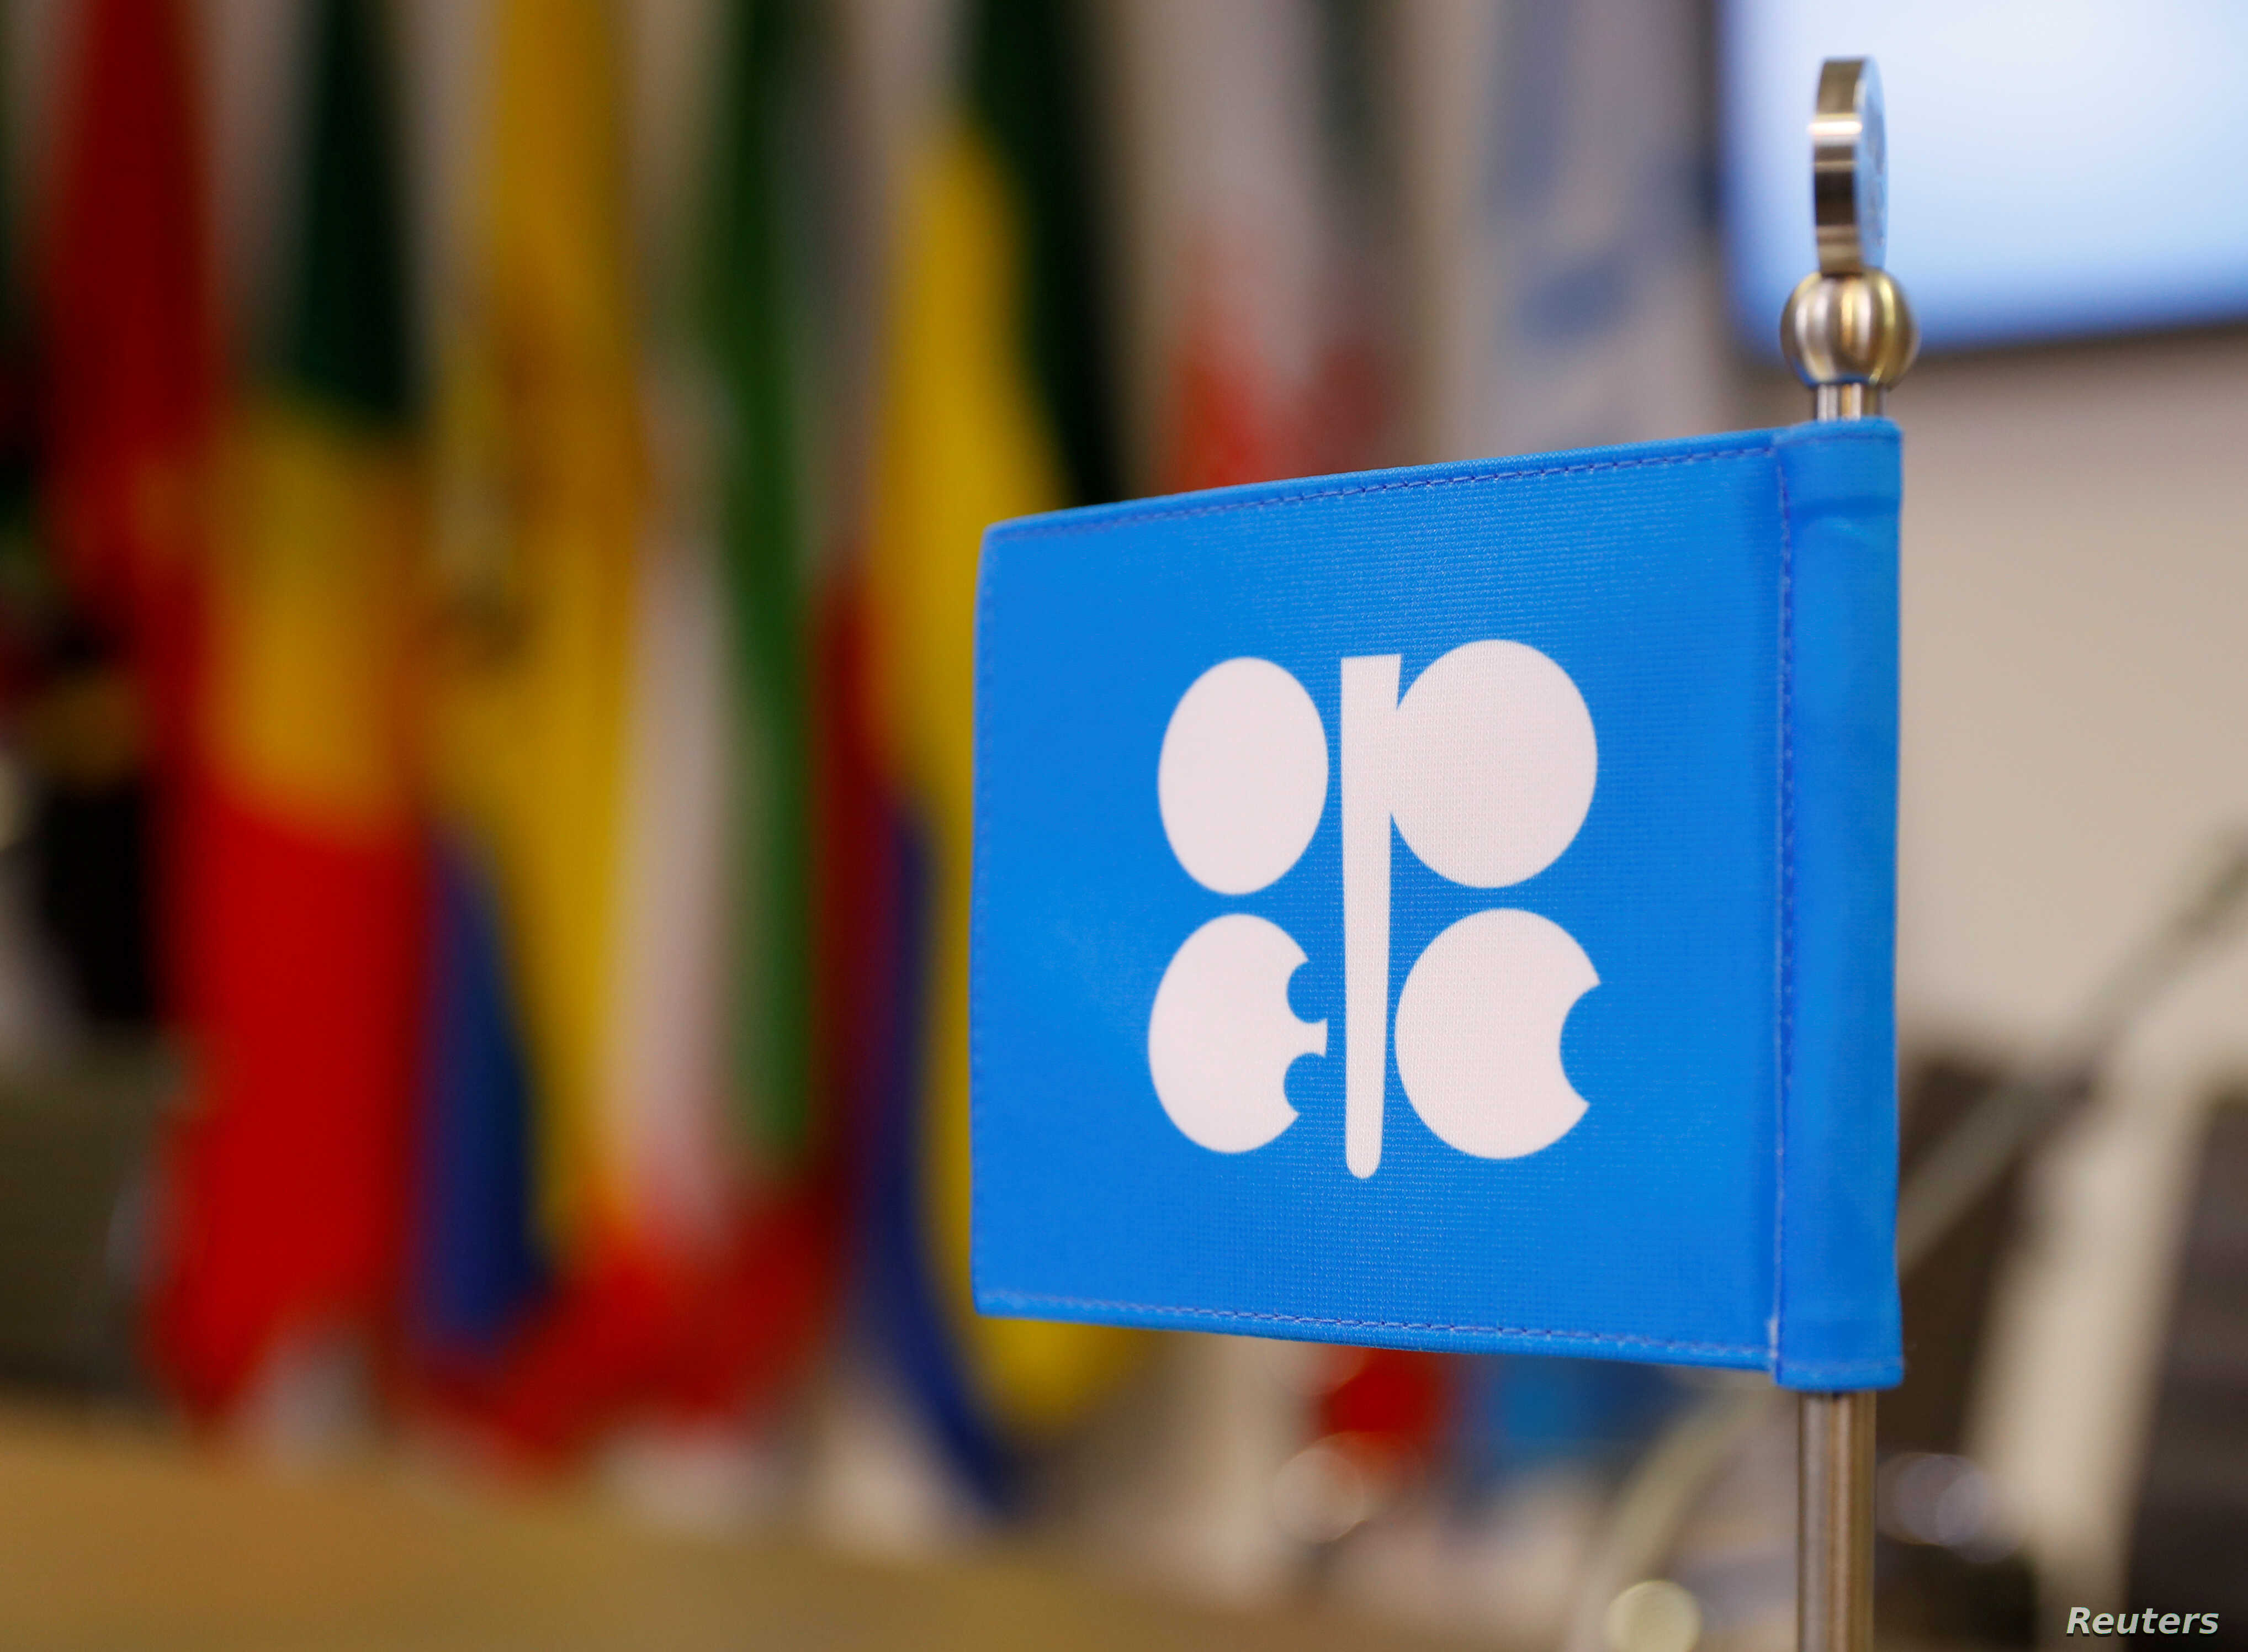 Opec Oil Exporters Reach Pact On Cutting Production Voice Of America English